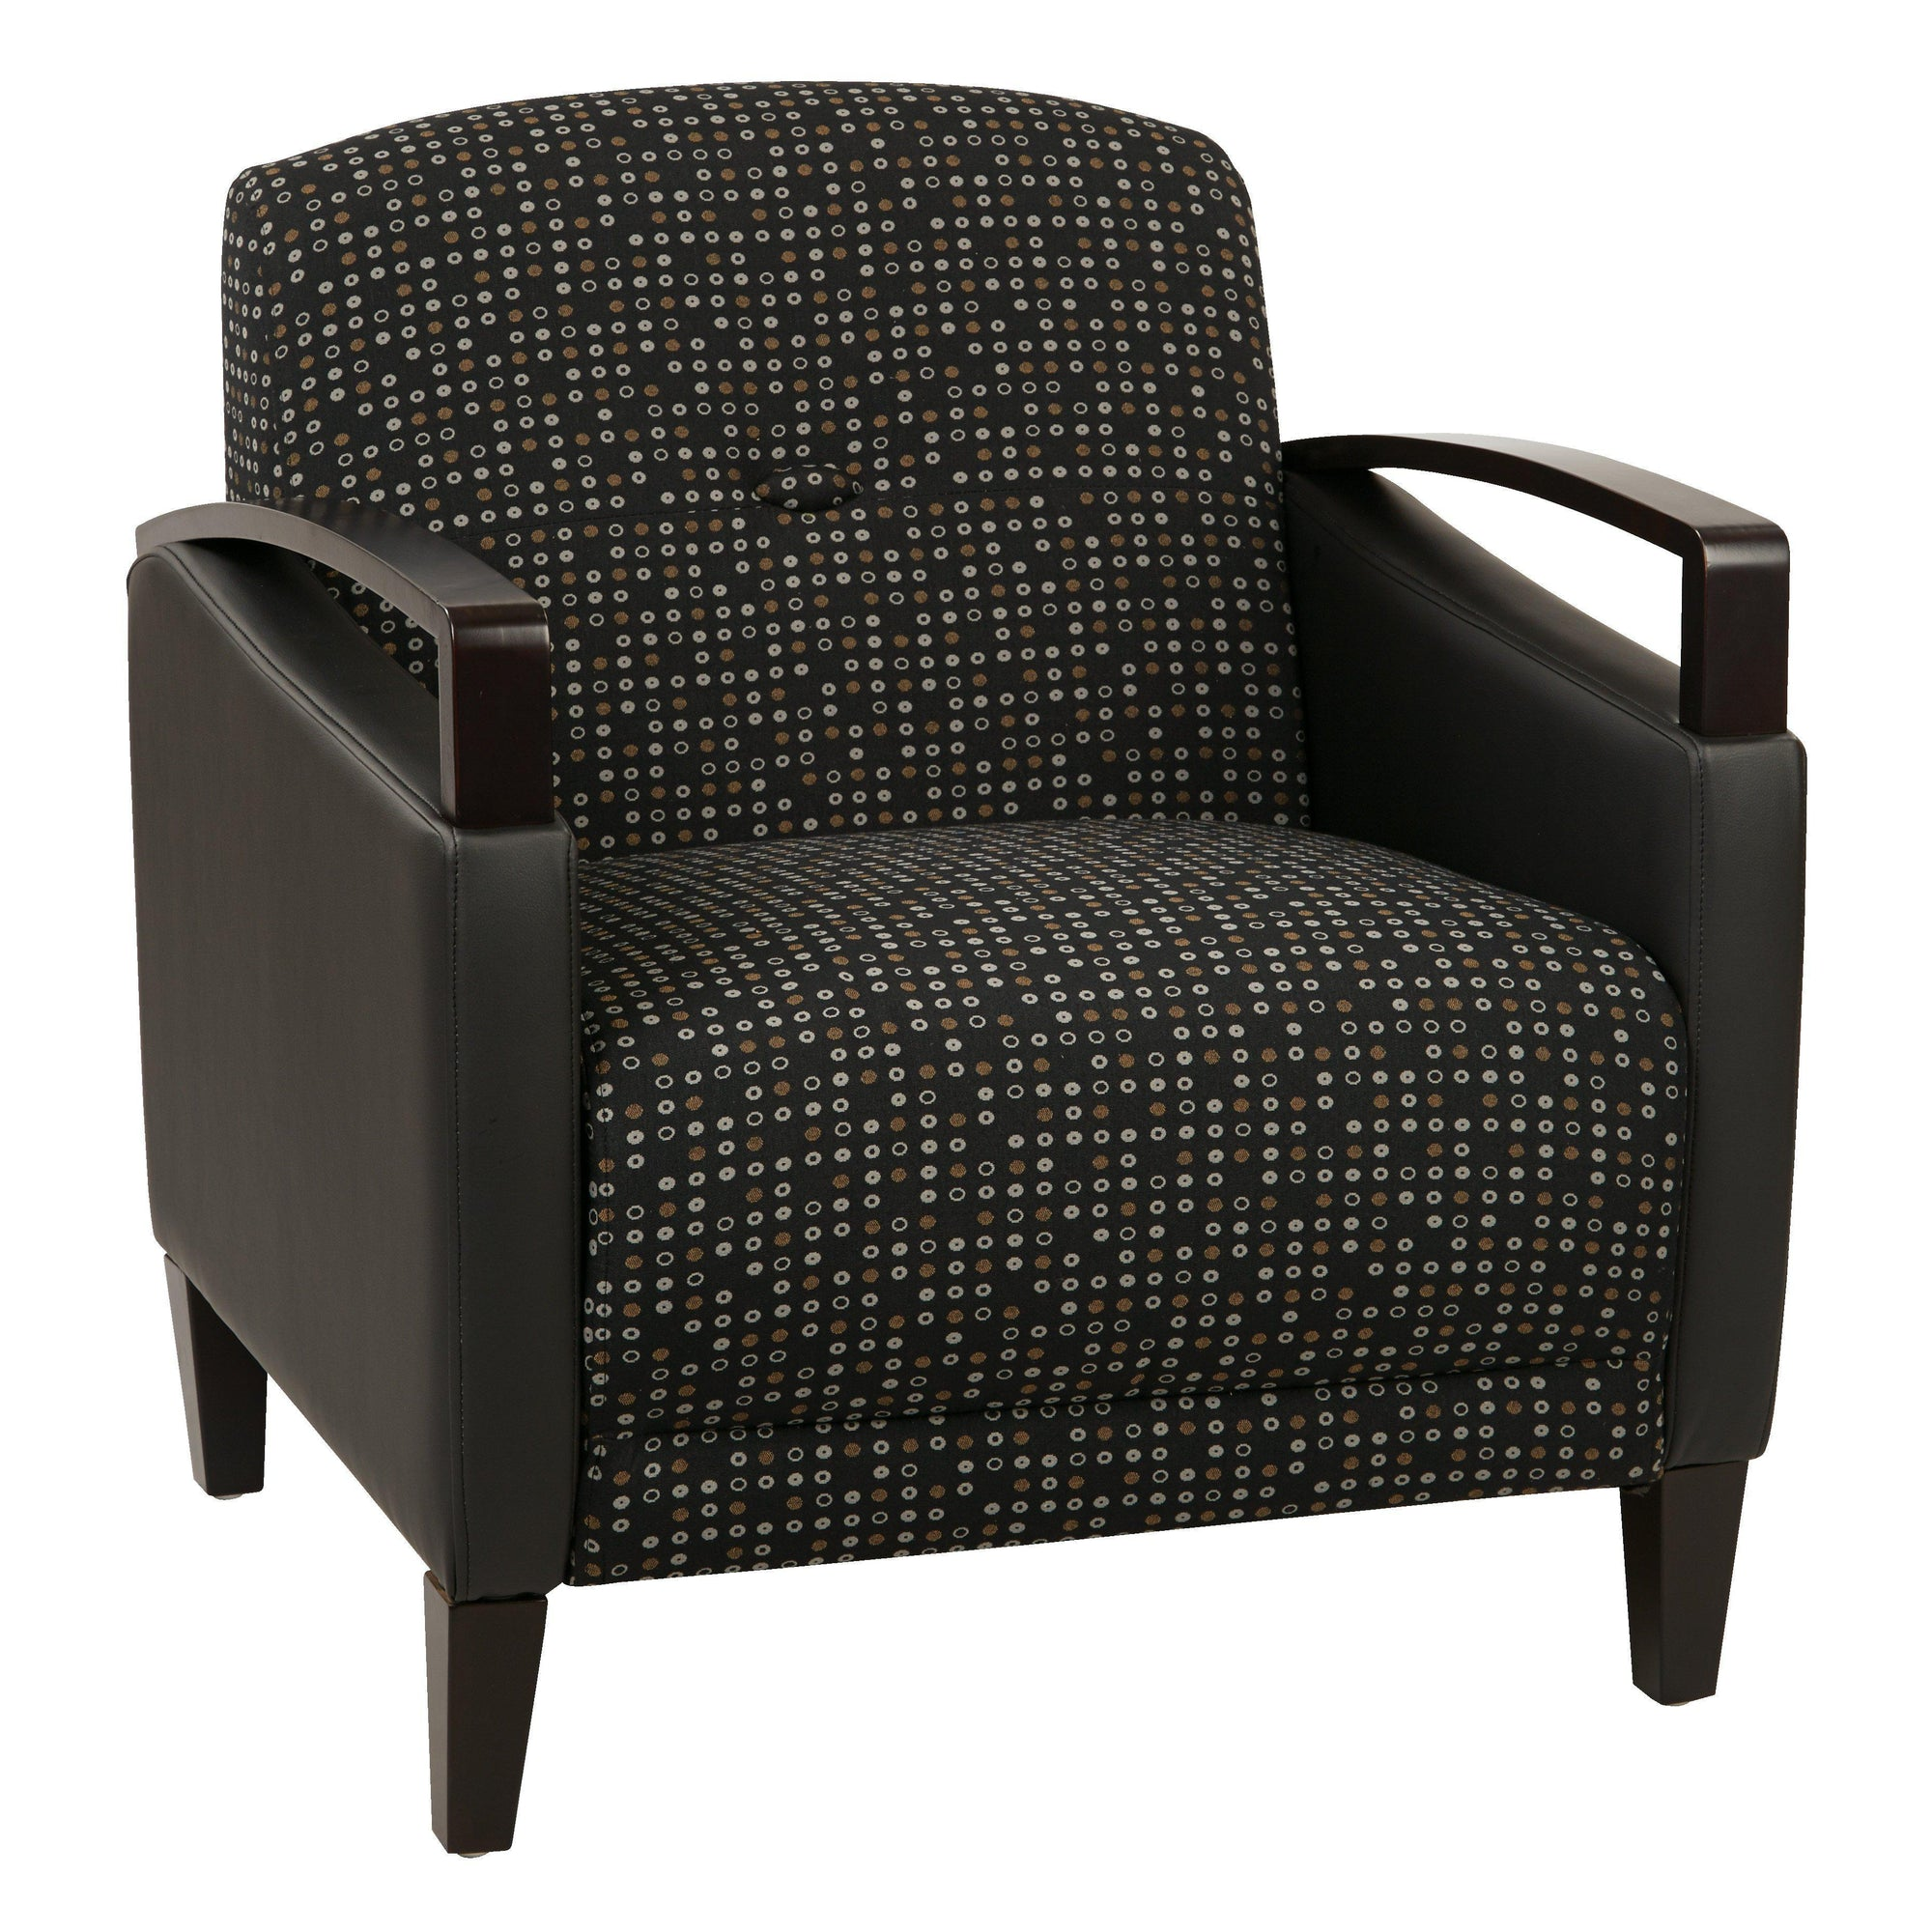 Main Street Chair with Espresso Finish and 2-Tone Upholstery